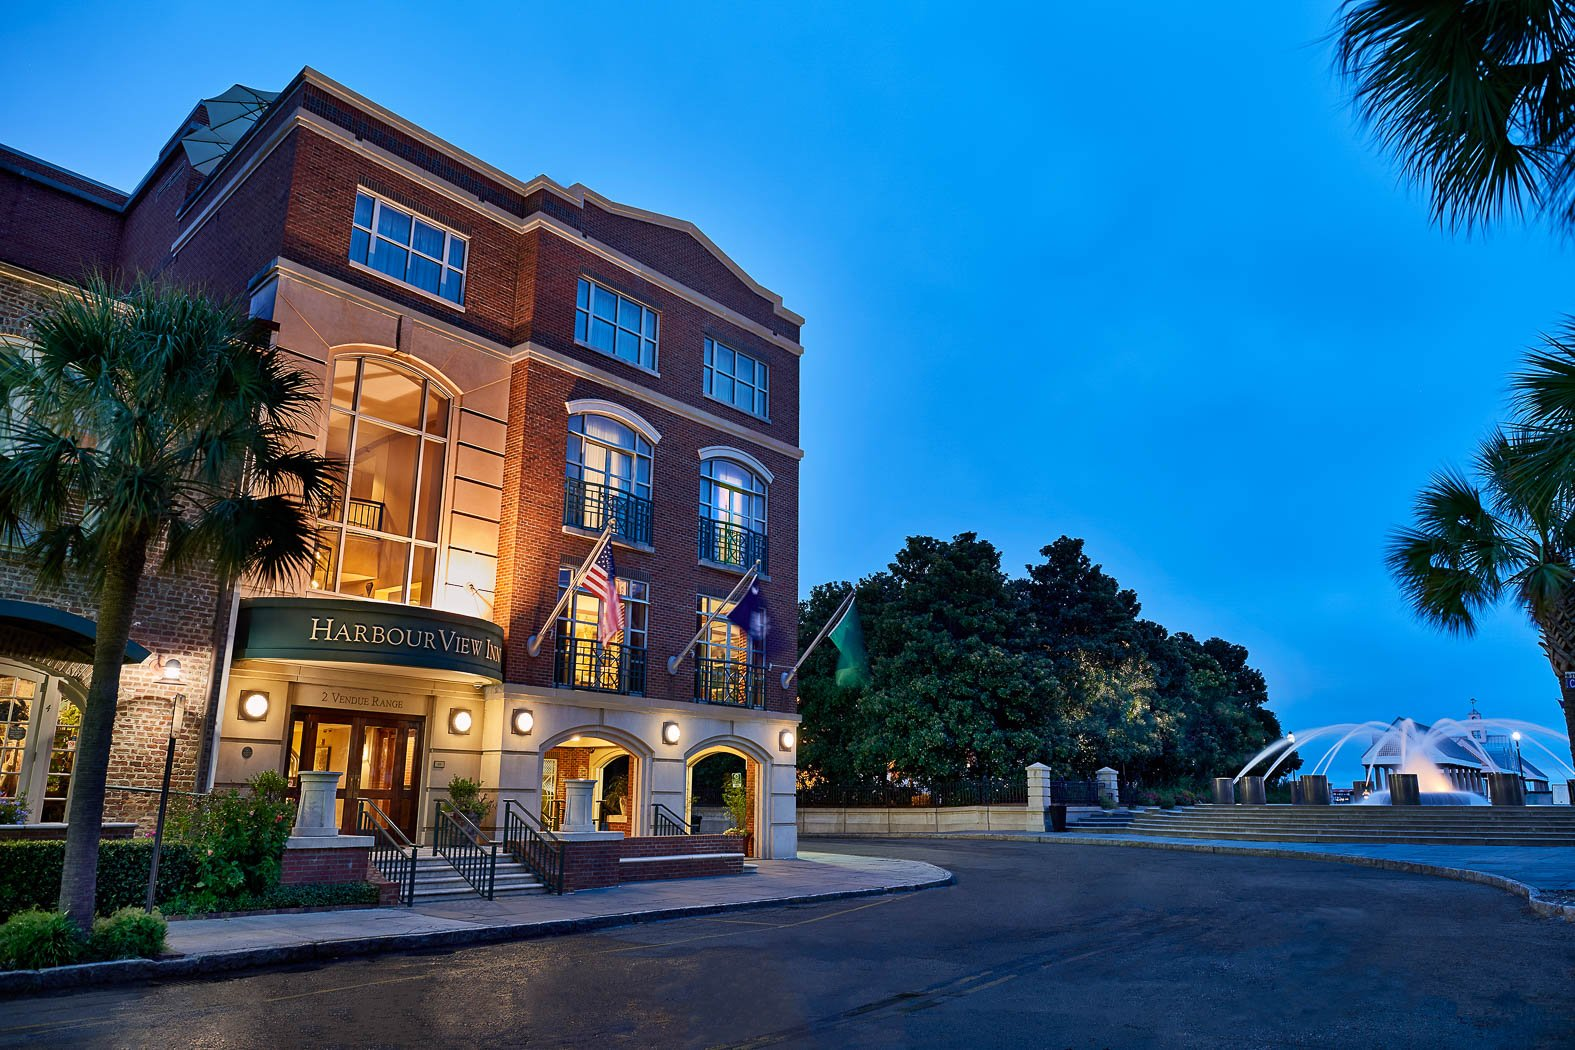 Hotel Entrance Lit Up At Night Charleston Smost Intimatewaterfront Retreat